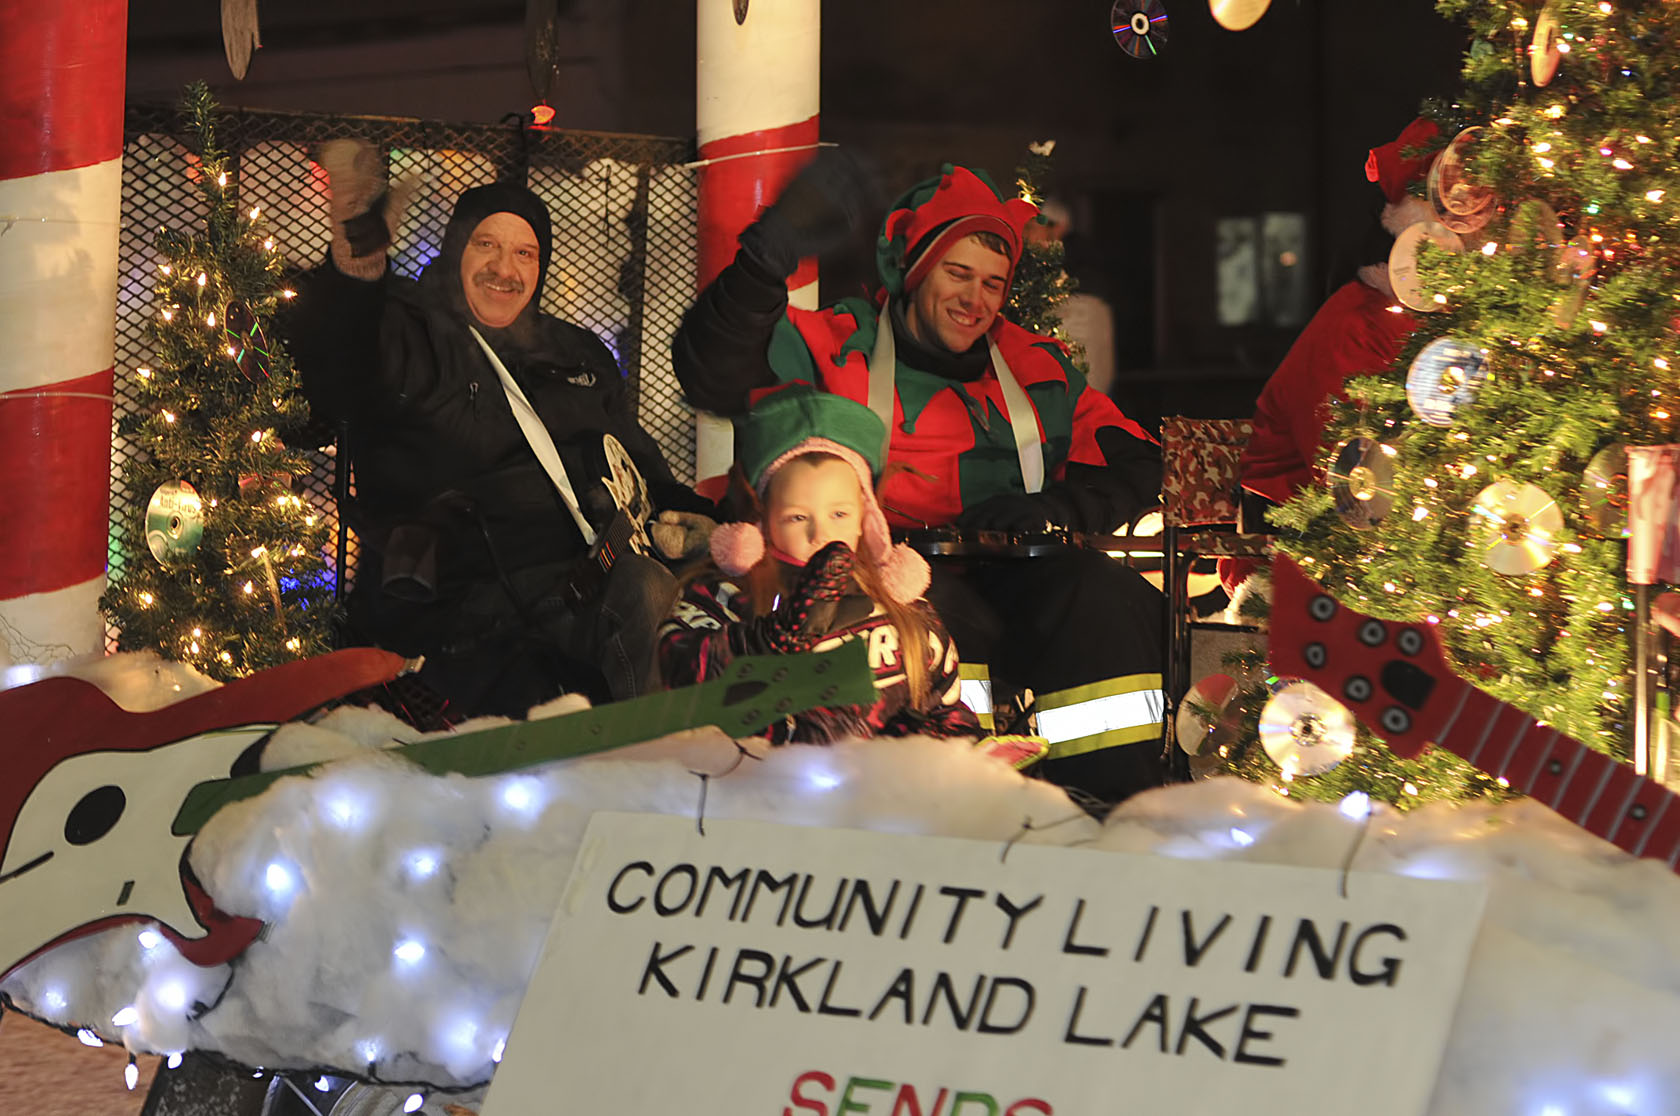 Kirkland Lake Christmas Parade! – Community Living Kirkland Lake